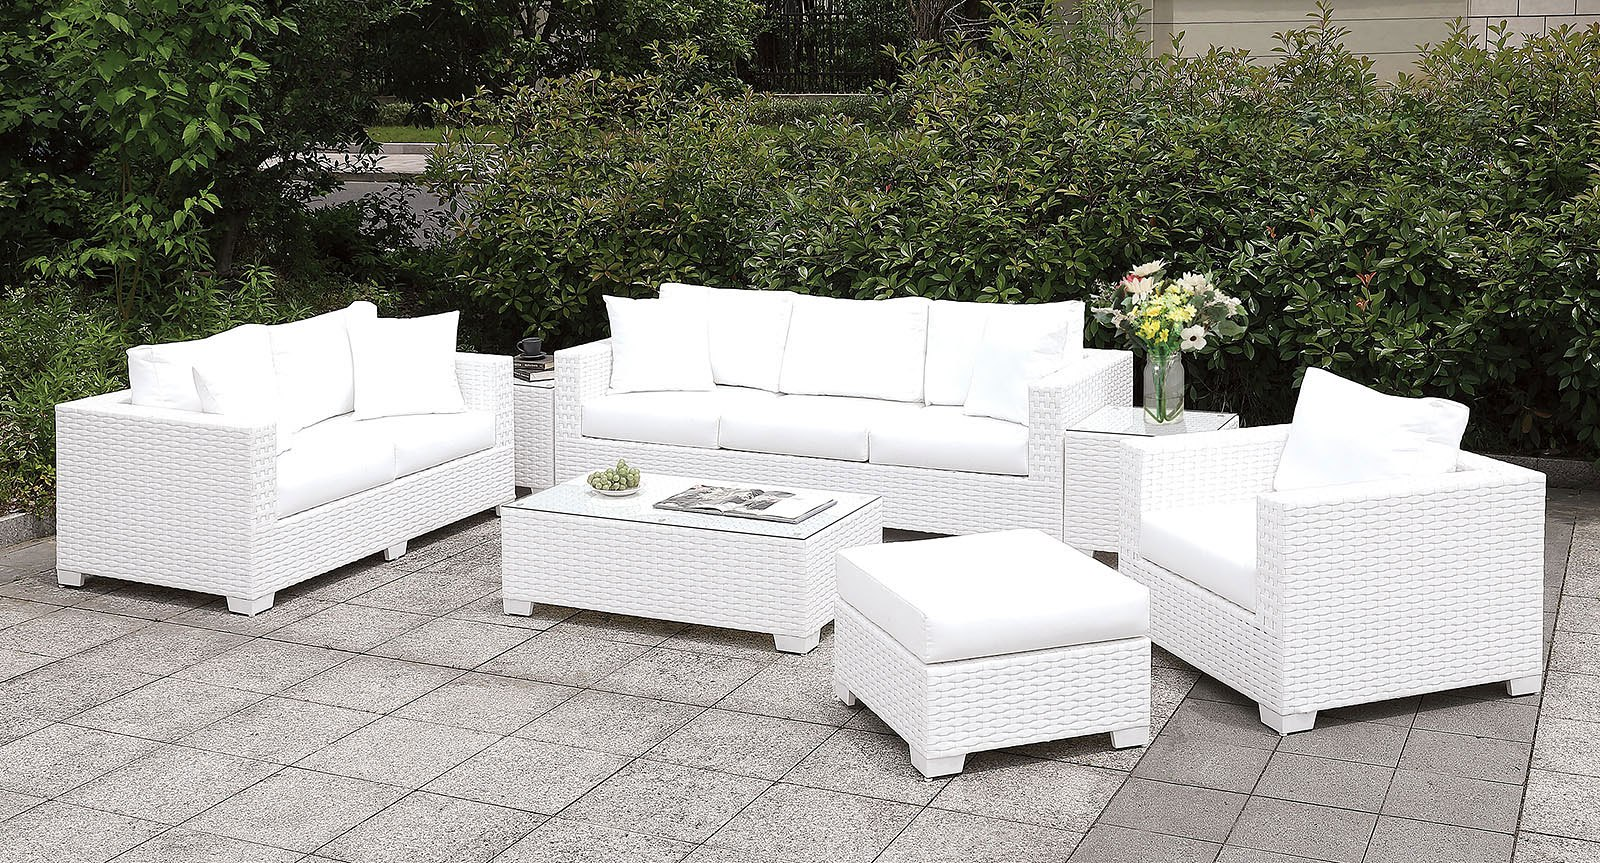 Somani White Outdoor Seating Set Configuration 15 Furniture Of America Furniture Cart